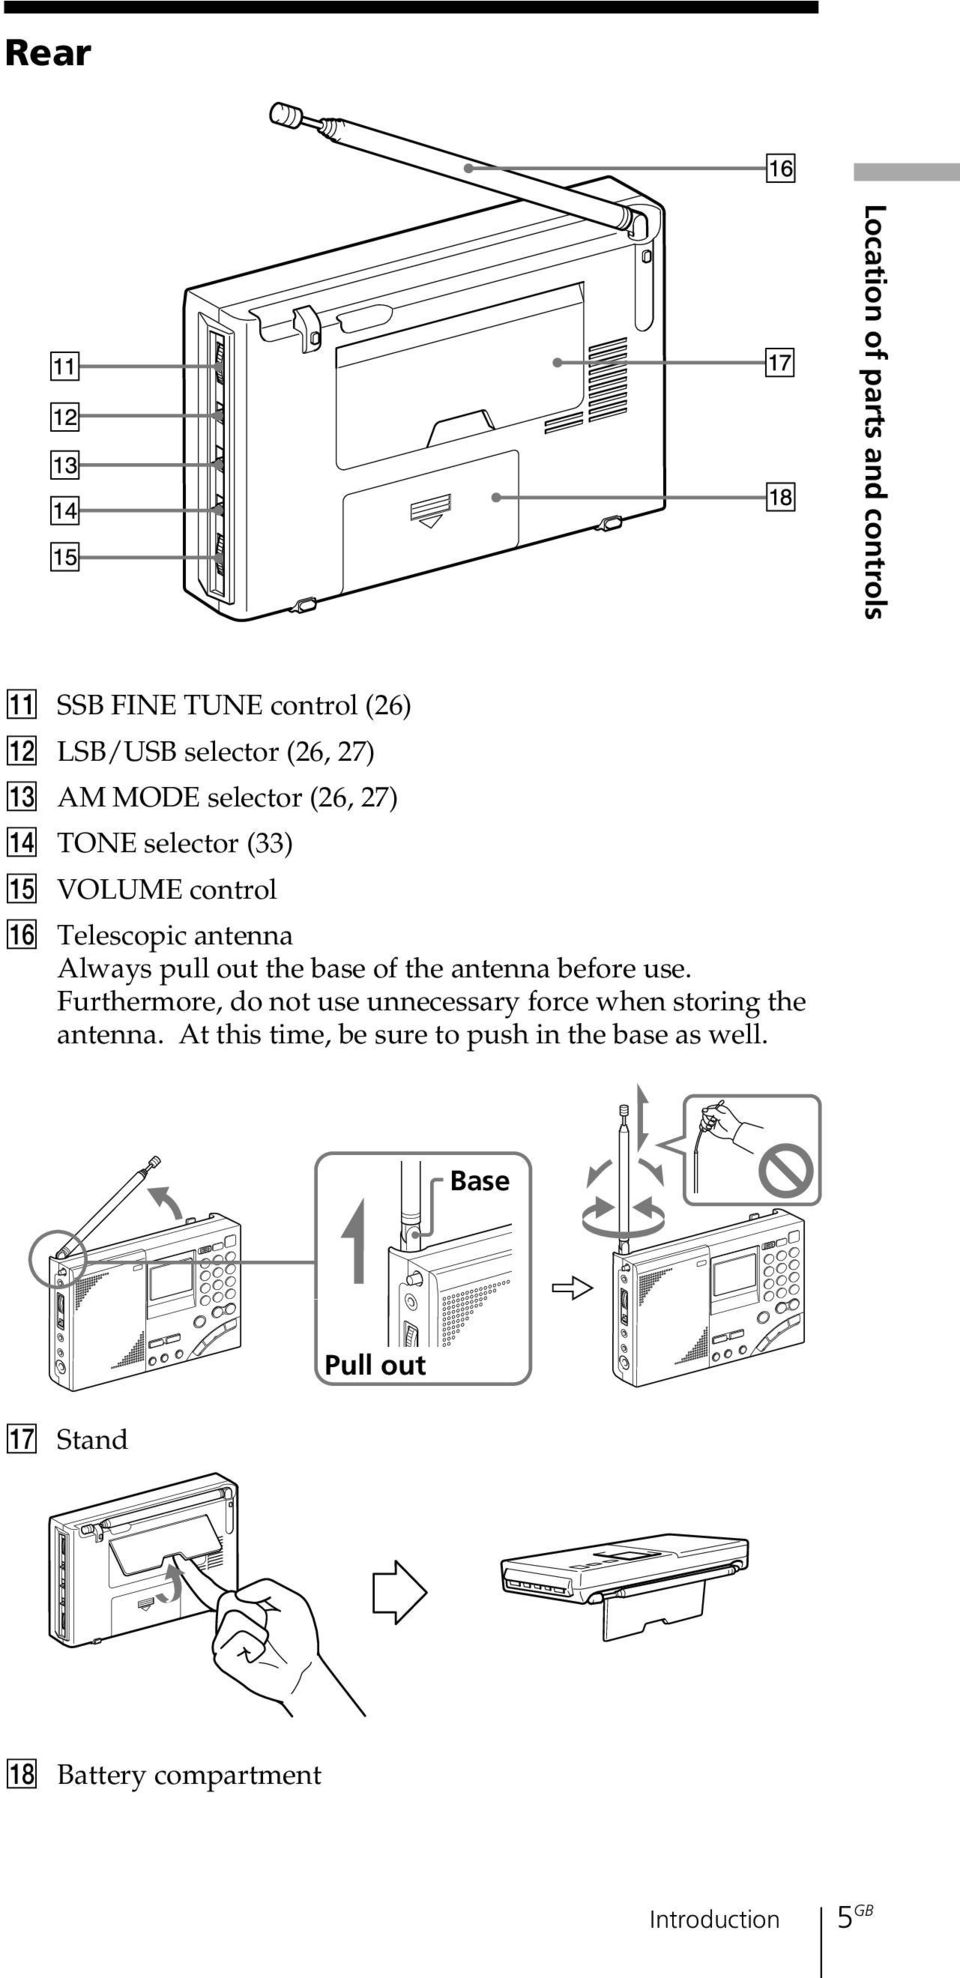 base of the antenna before use. Furthermore, do not use unnecessary force when storing the antenna.